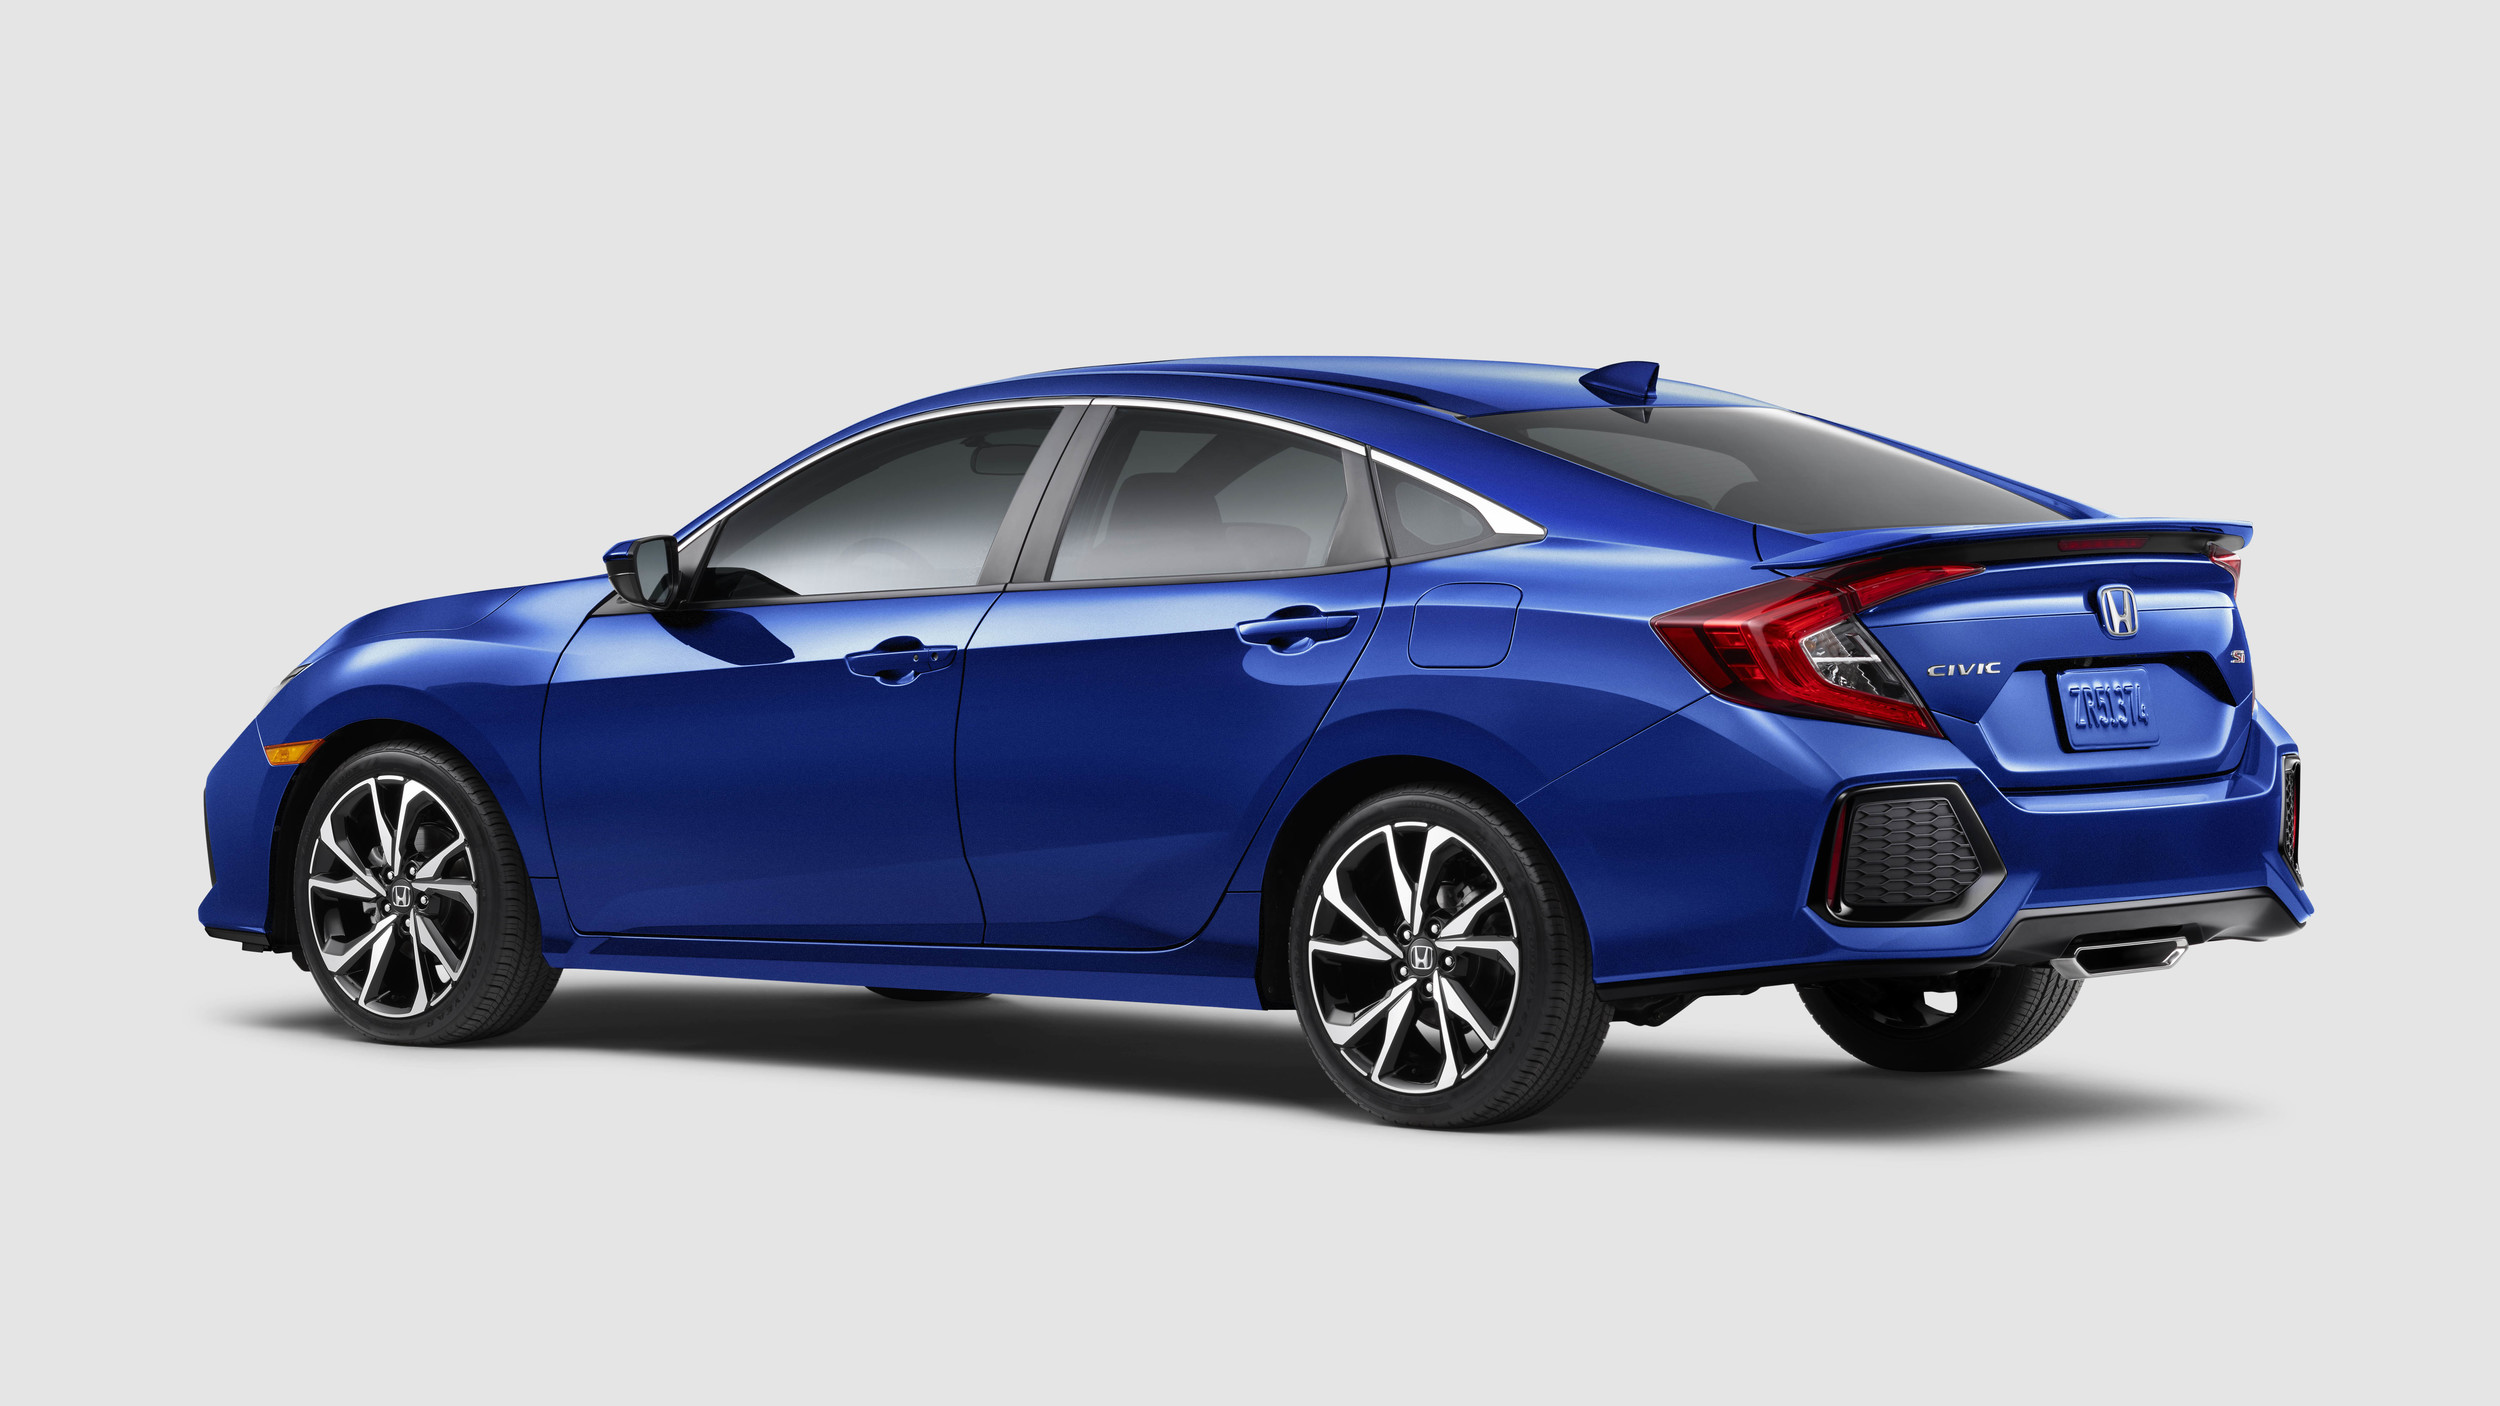 Honda Civic Si 2018 (6)